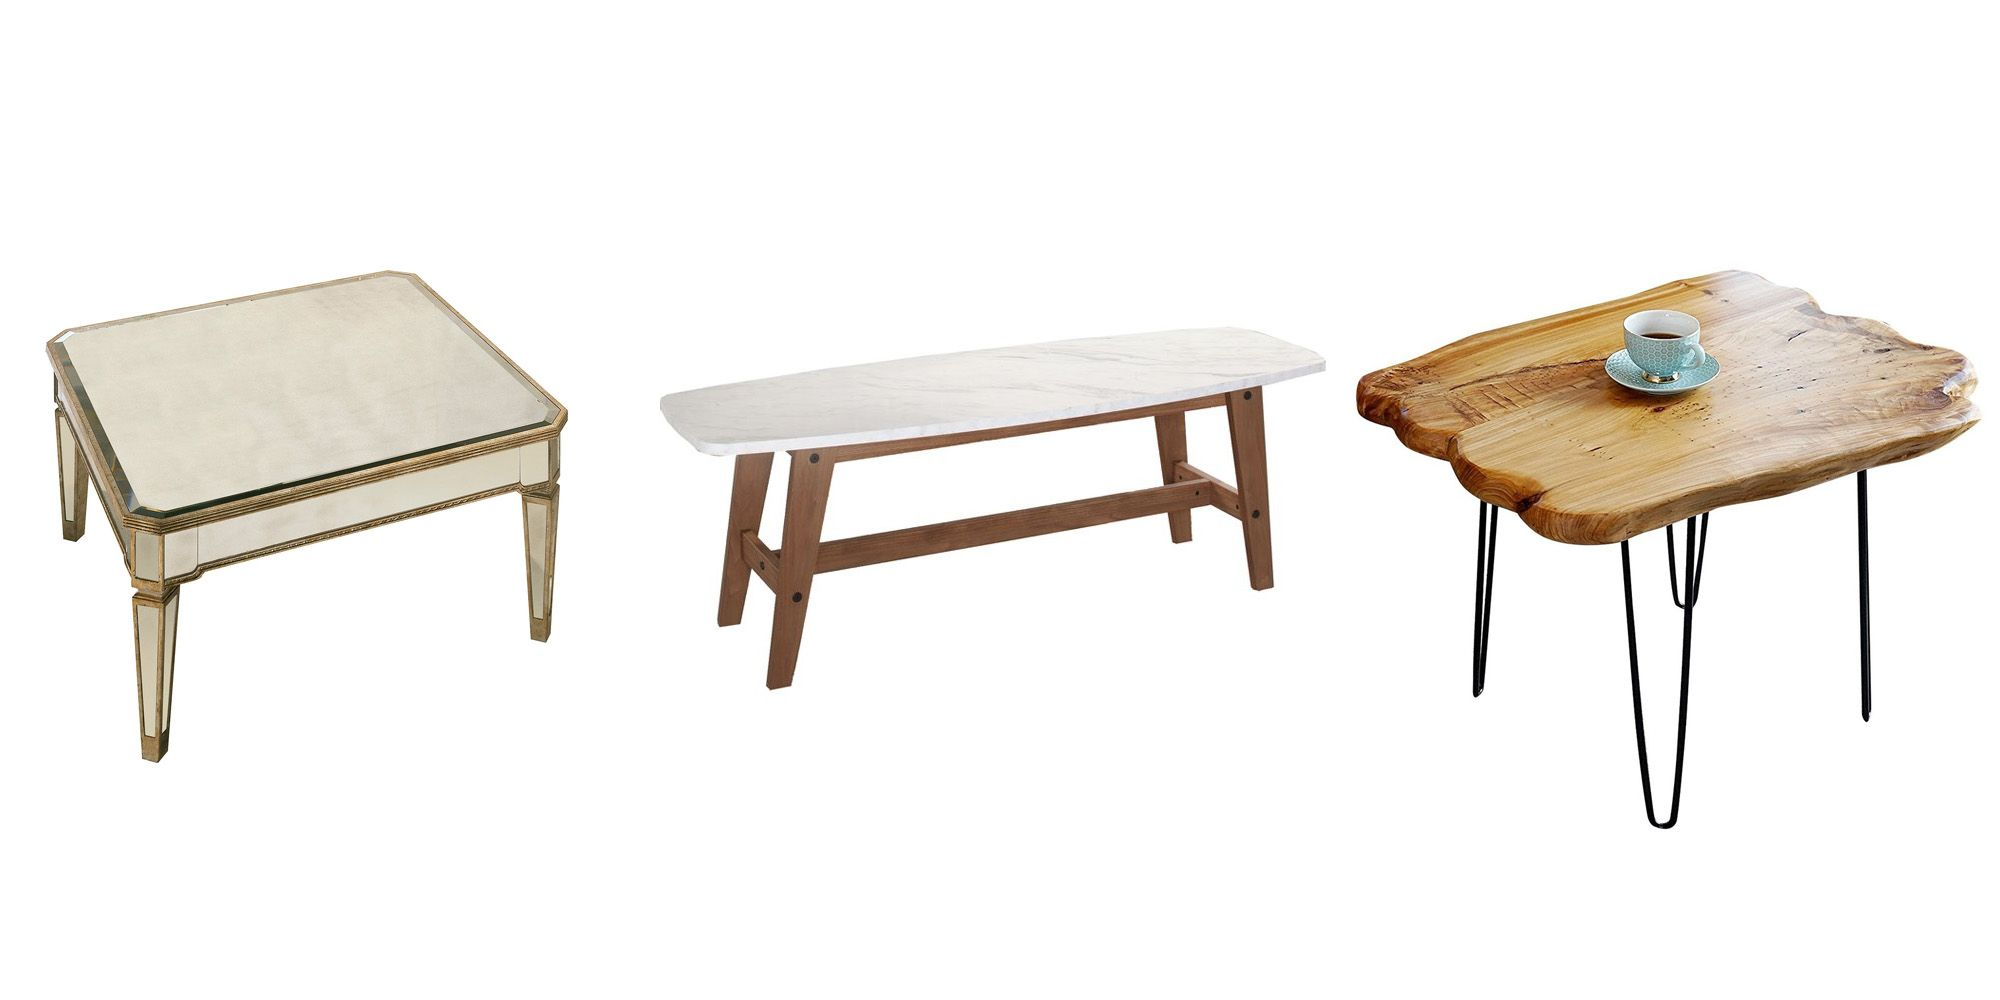 Charmant 20 Best Small Coffee Tables   Furniture For Small Spaces   Franquicias De Internet.info